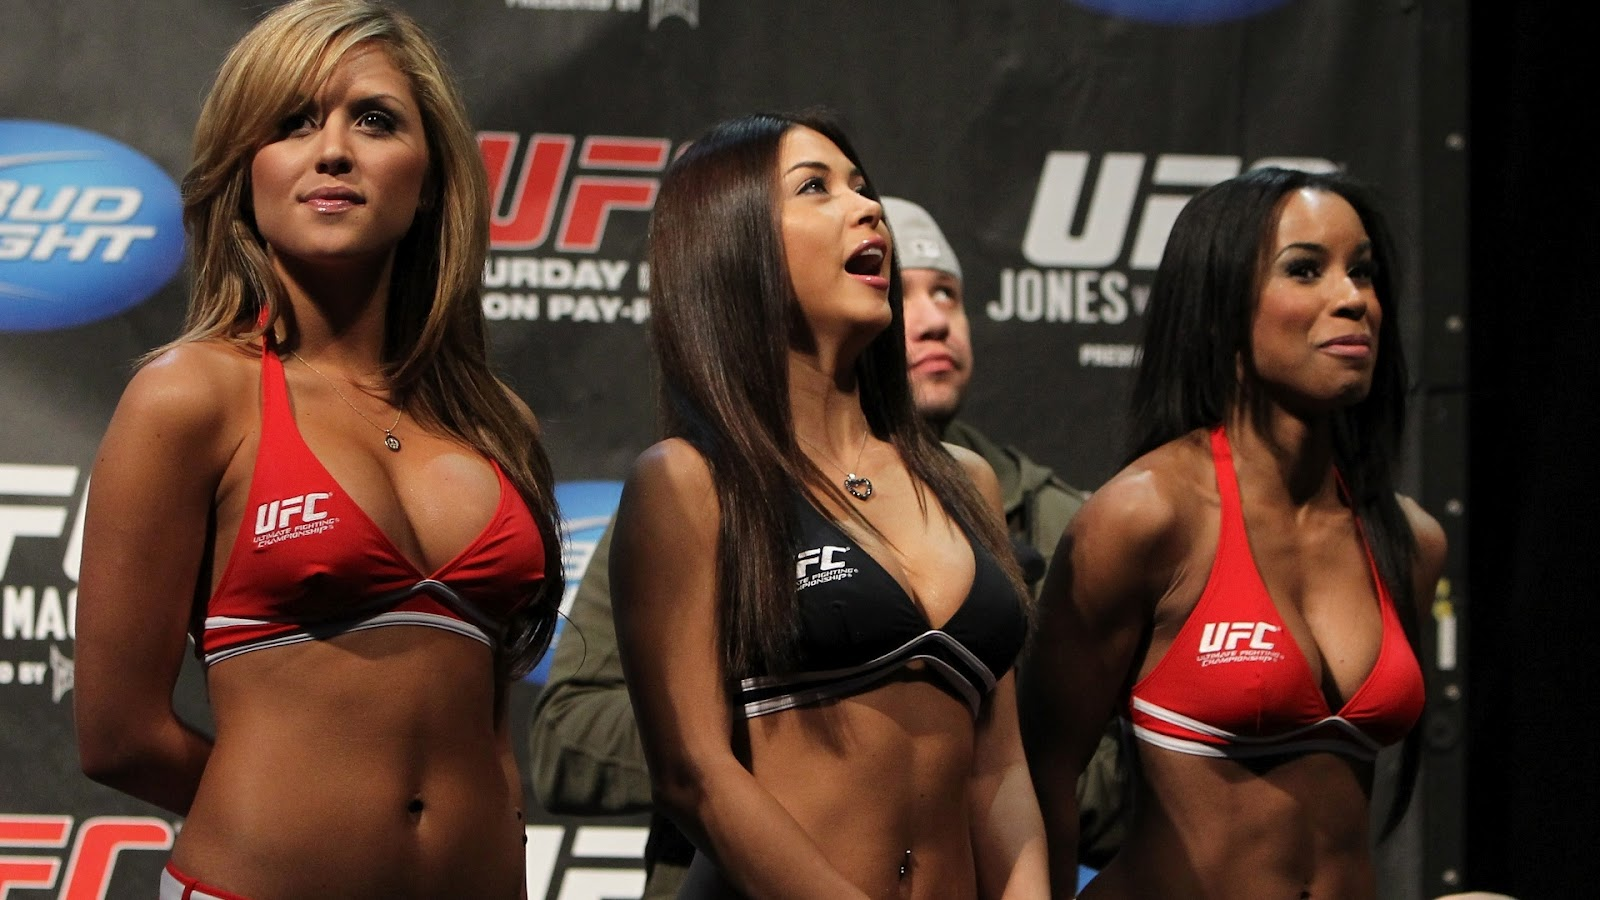 Free Wallpaper Stock  Wallpaper Ufc Girls